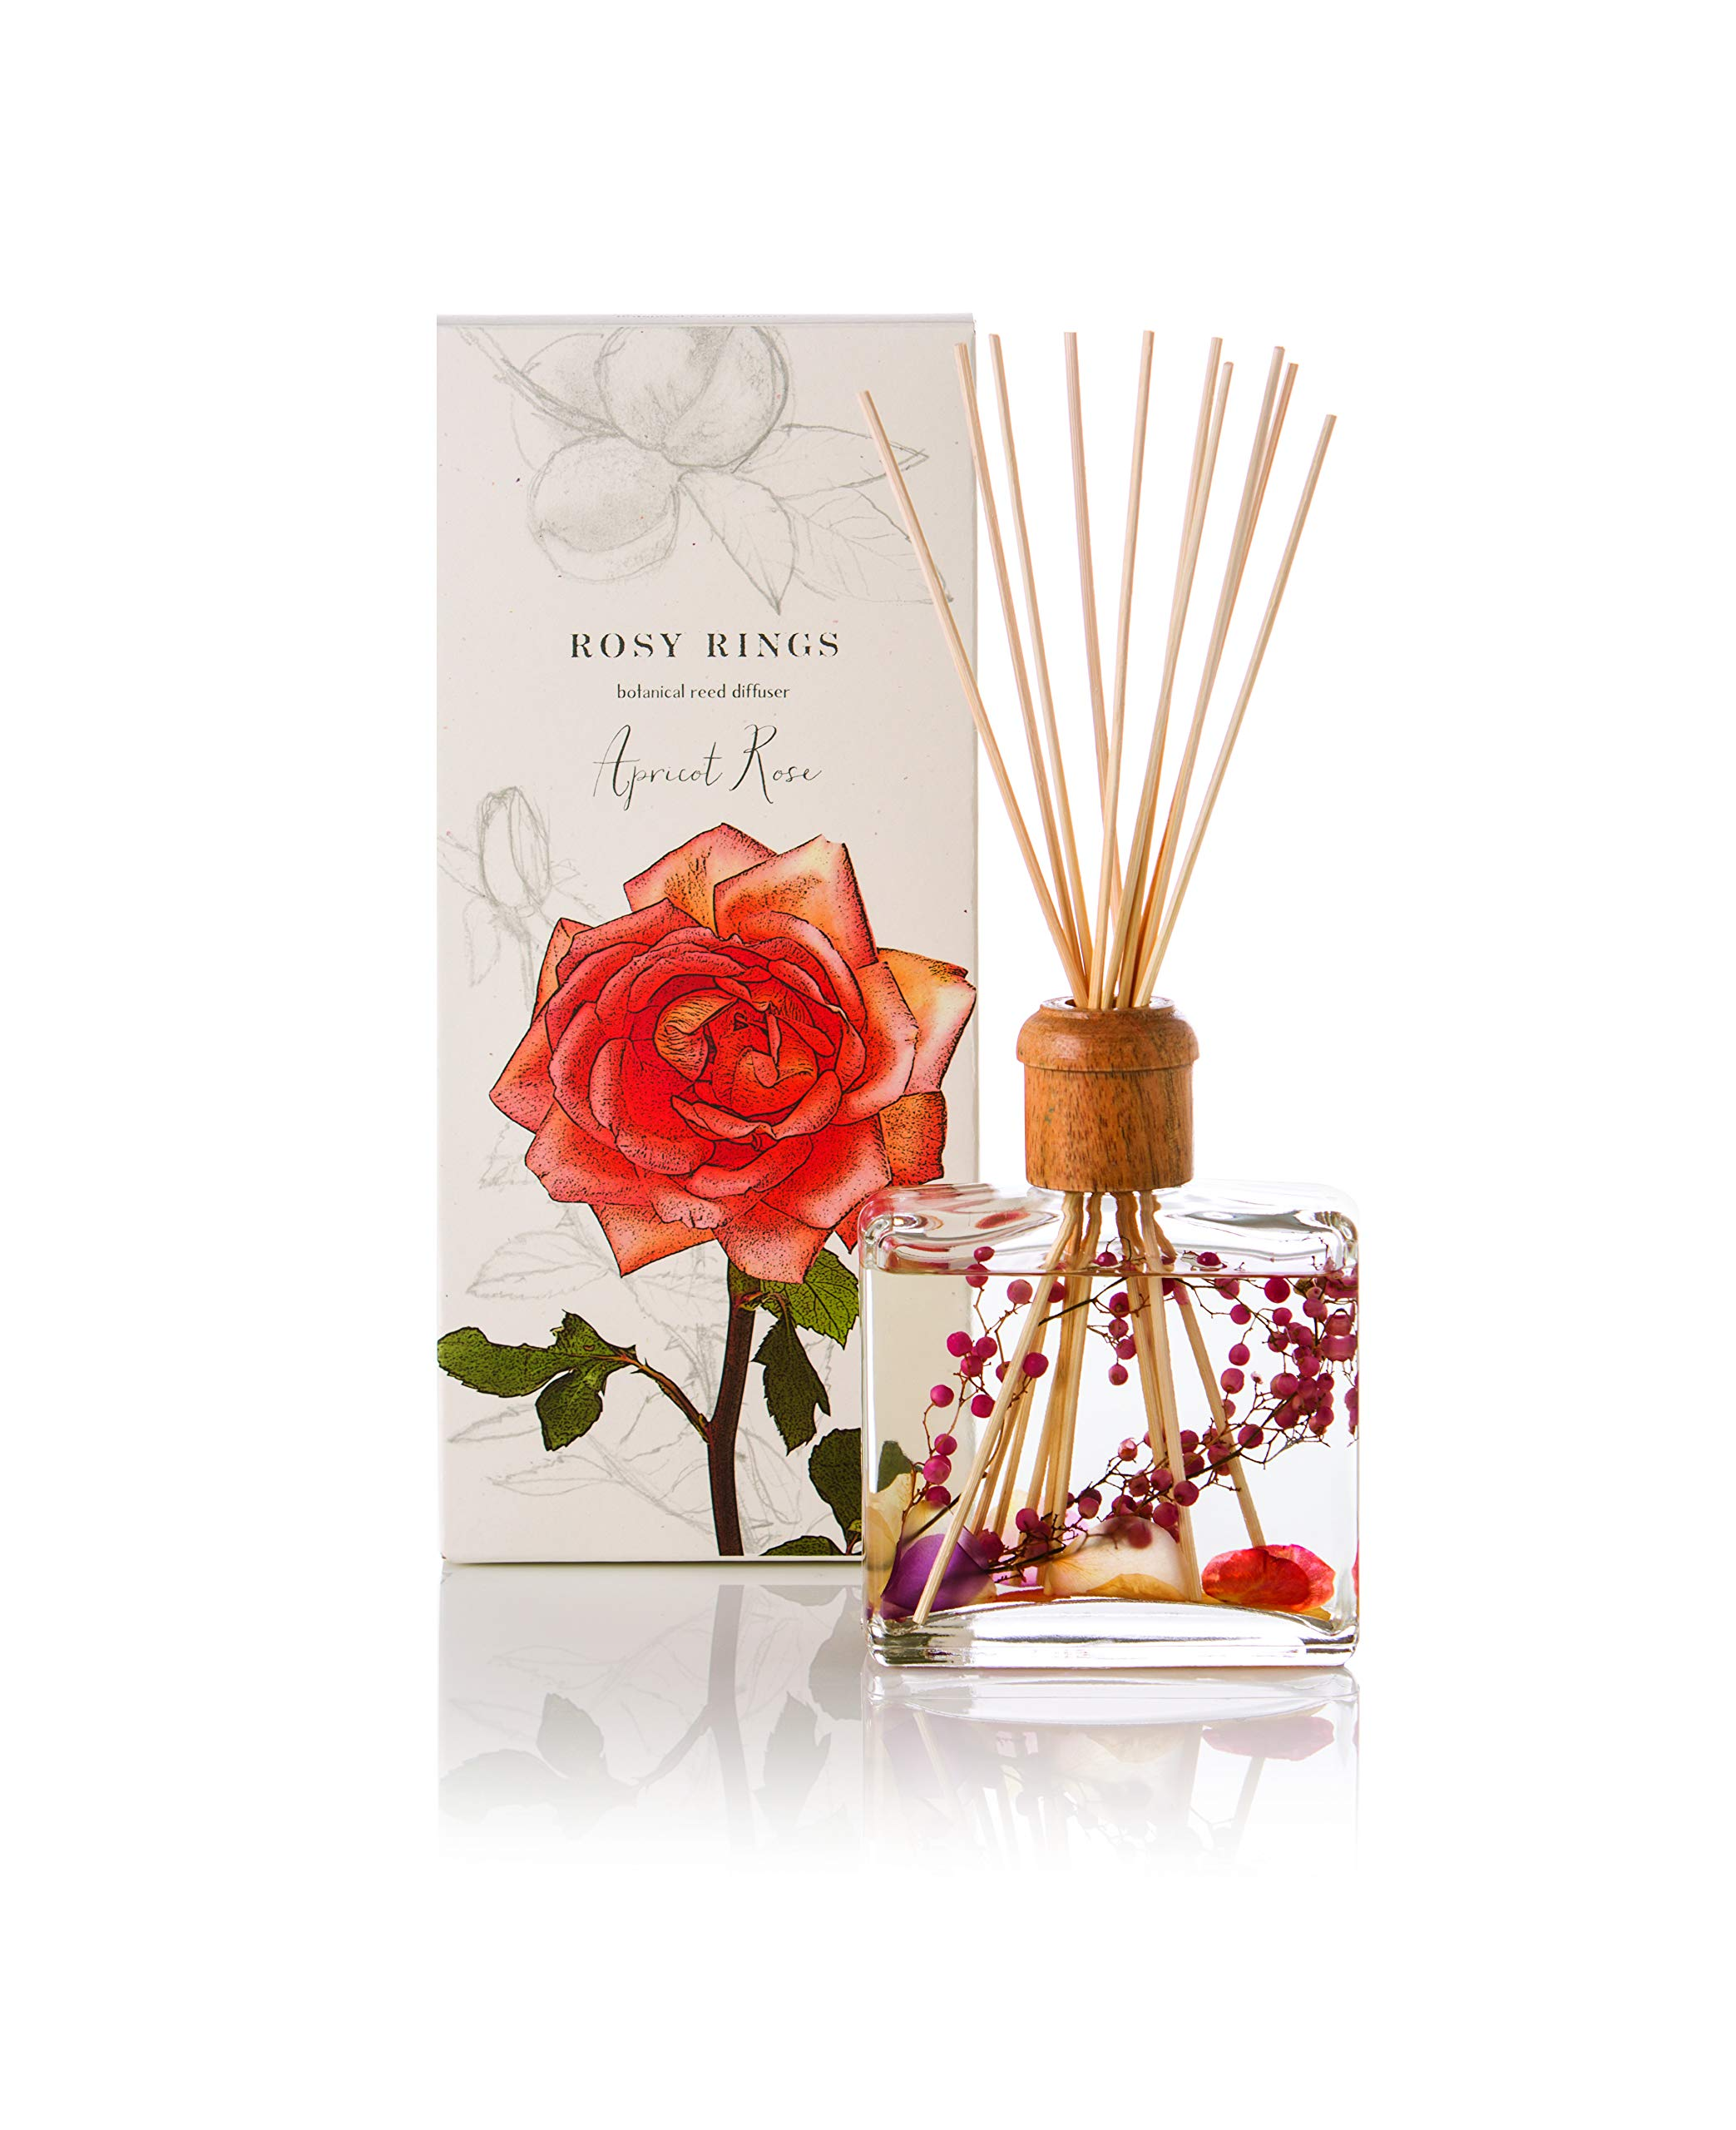 Rosy Rings Botanical Reed Diffuser - Apricot Rose by Rosy Rings